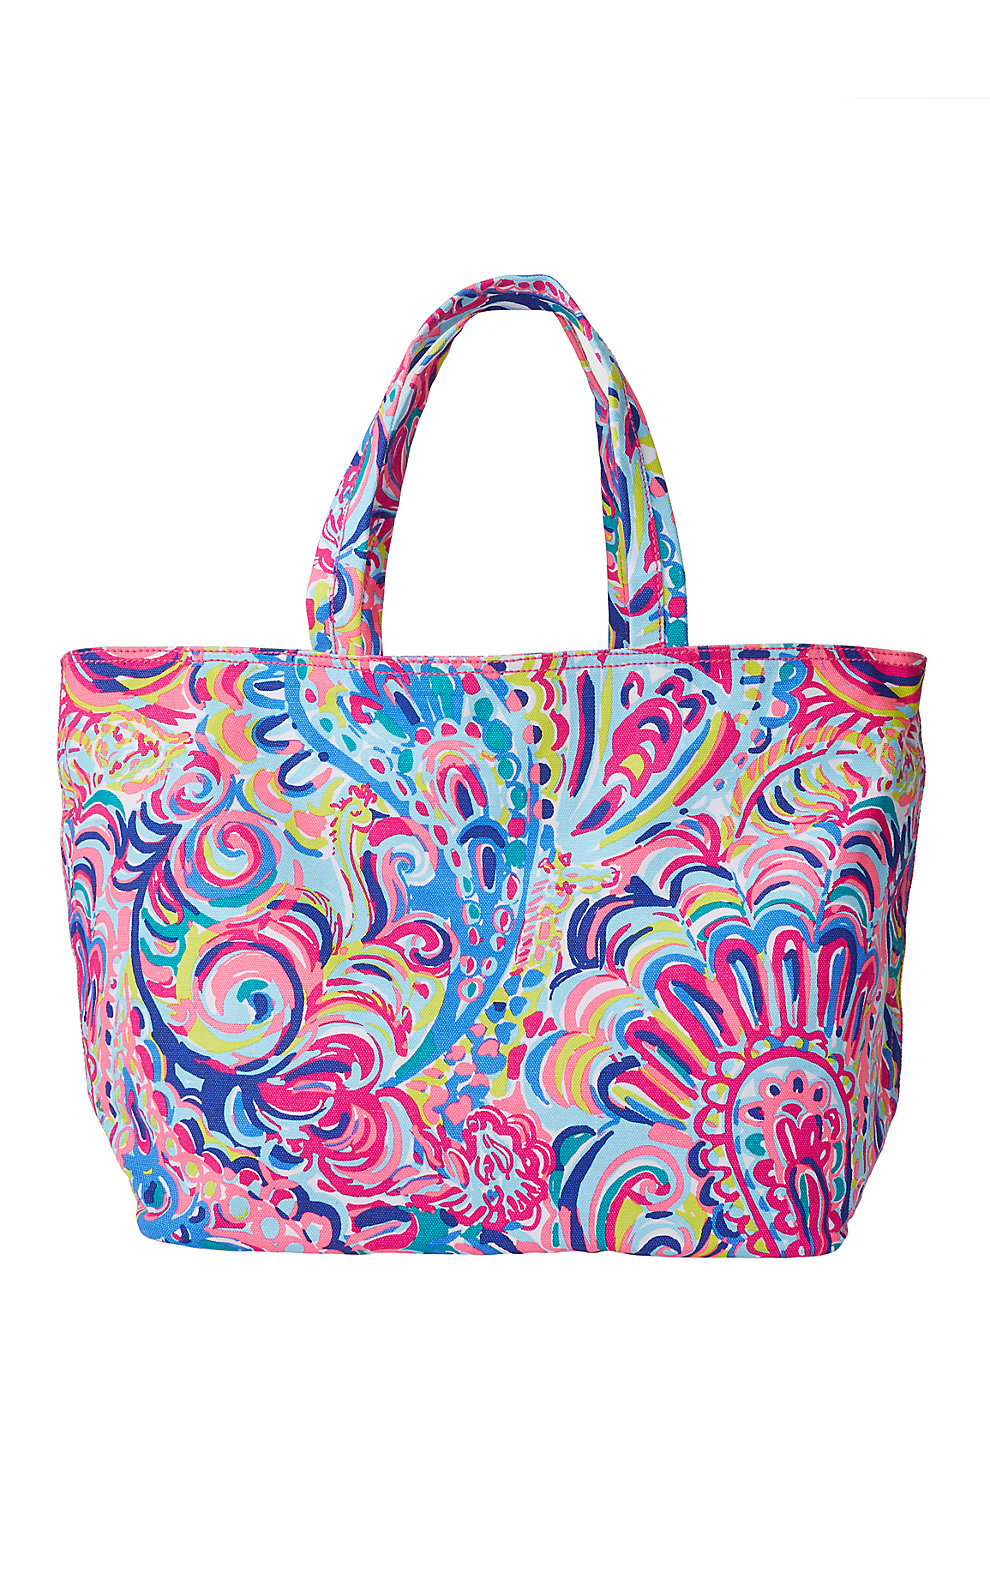 Lilly Pulitzer Palm Beach Tote - Psychedelic Sushine